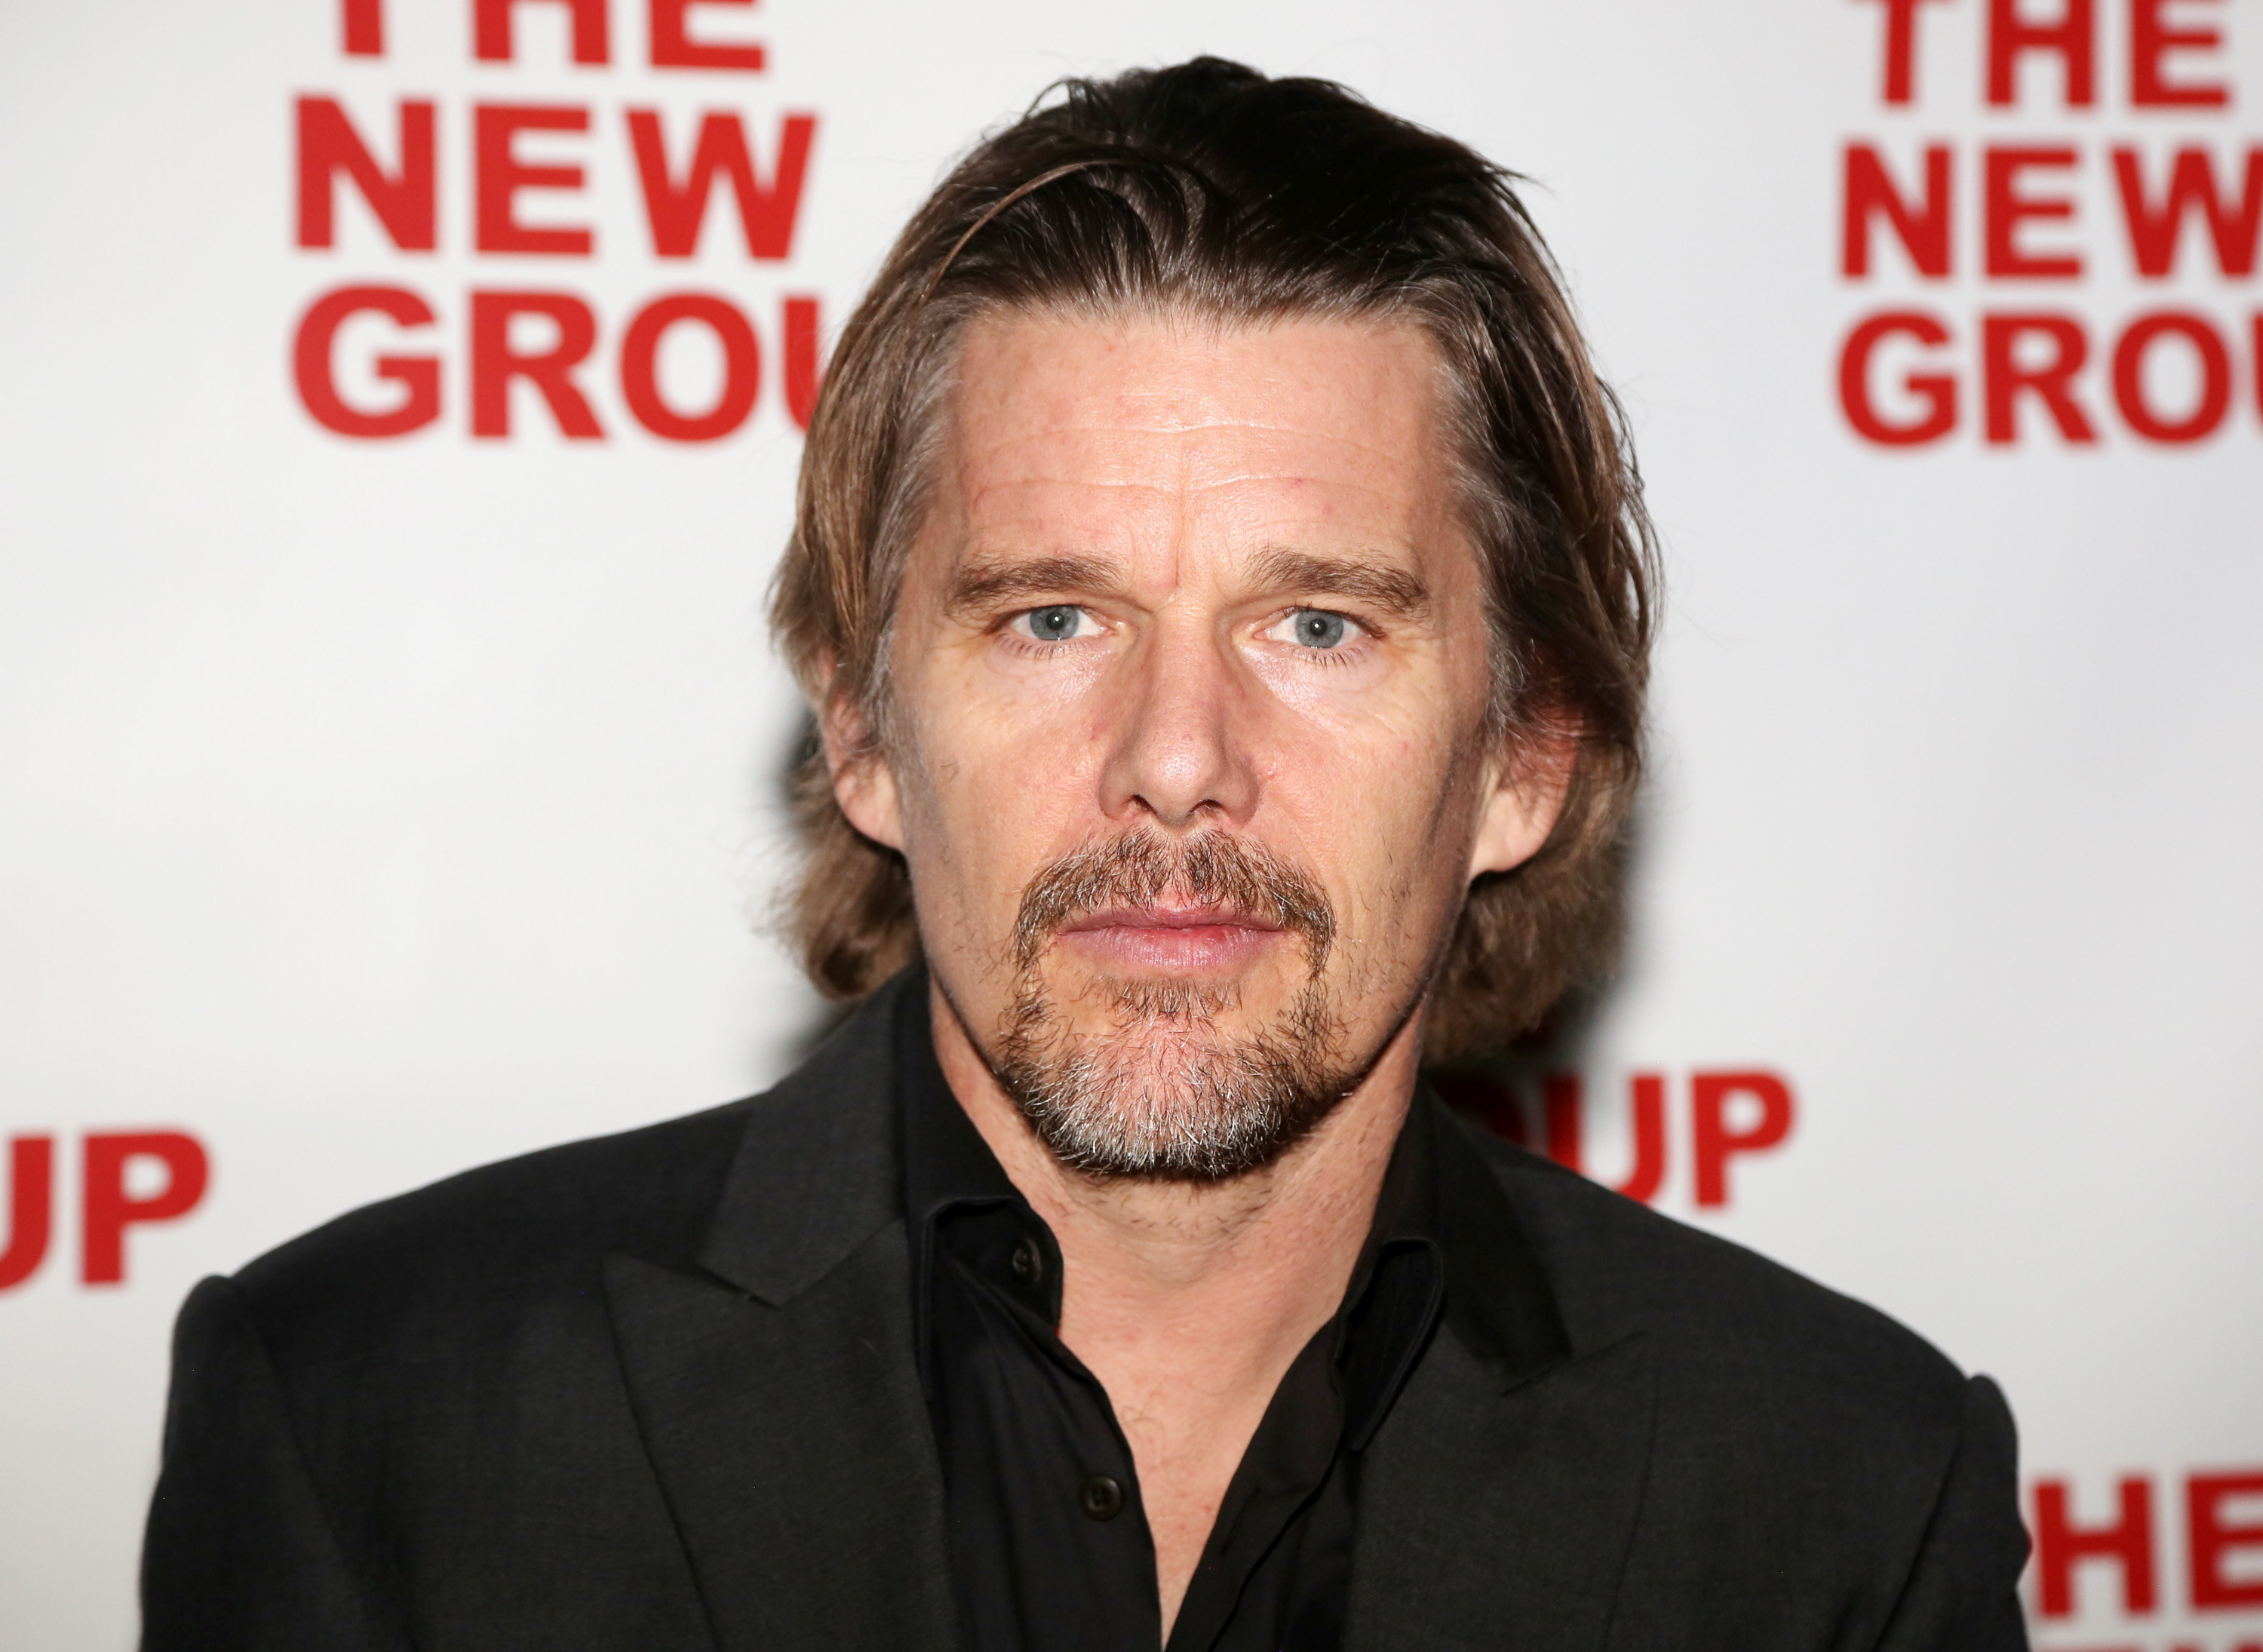 Ethan Hawke in a black shirt open at the collar